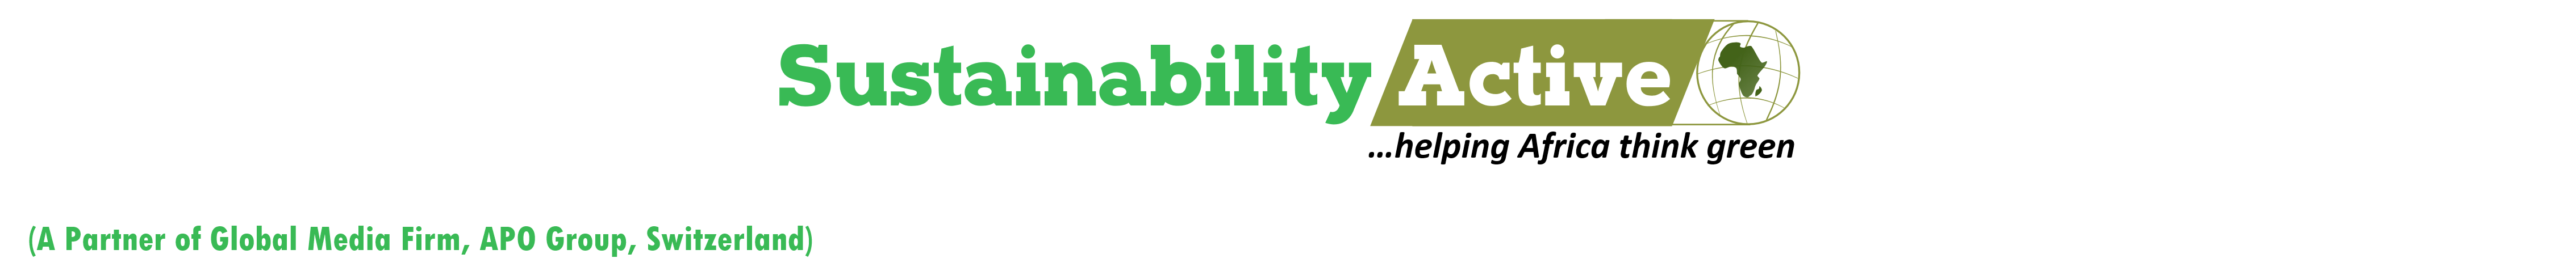 Image result for sustainability active.com logo